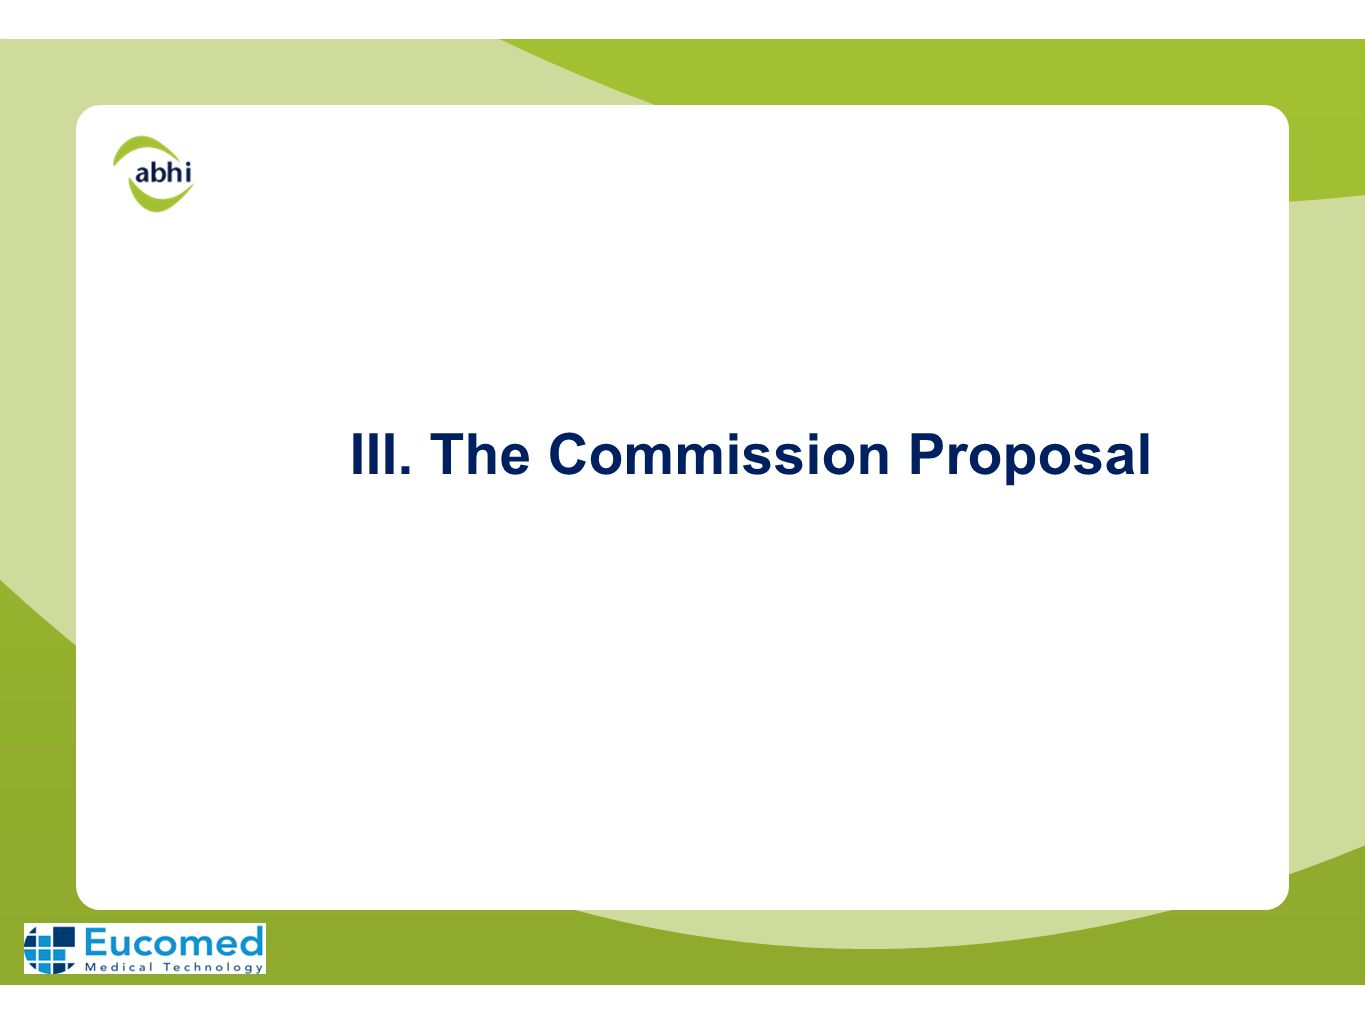 III. The Commission Proposal